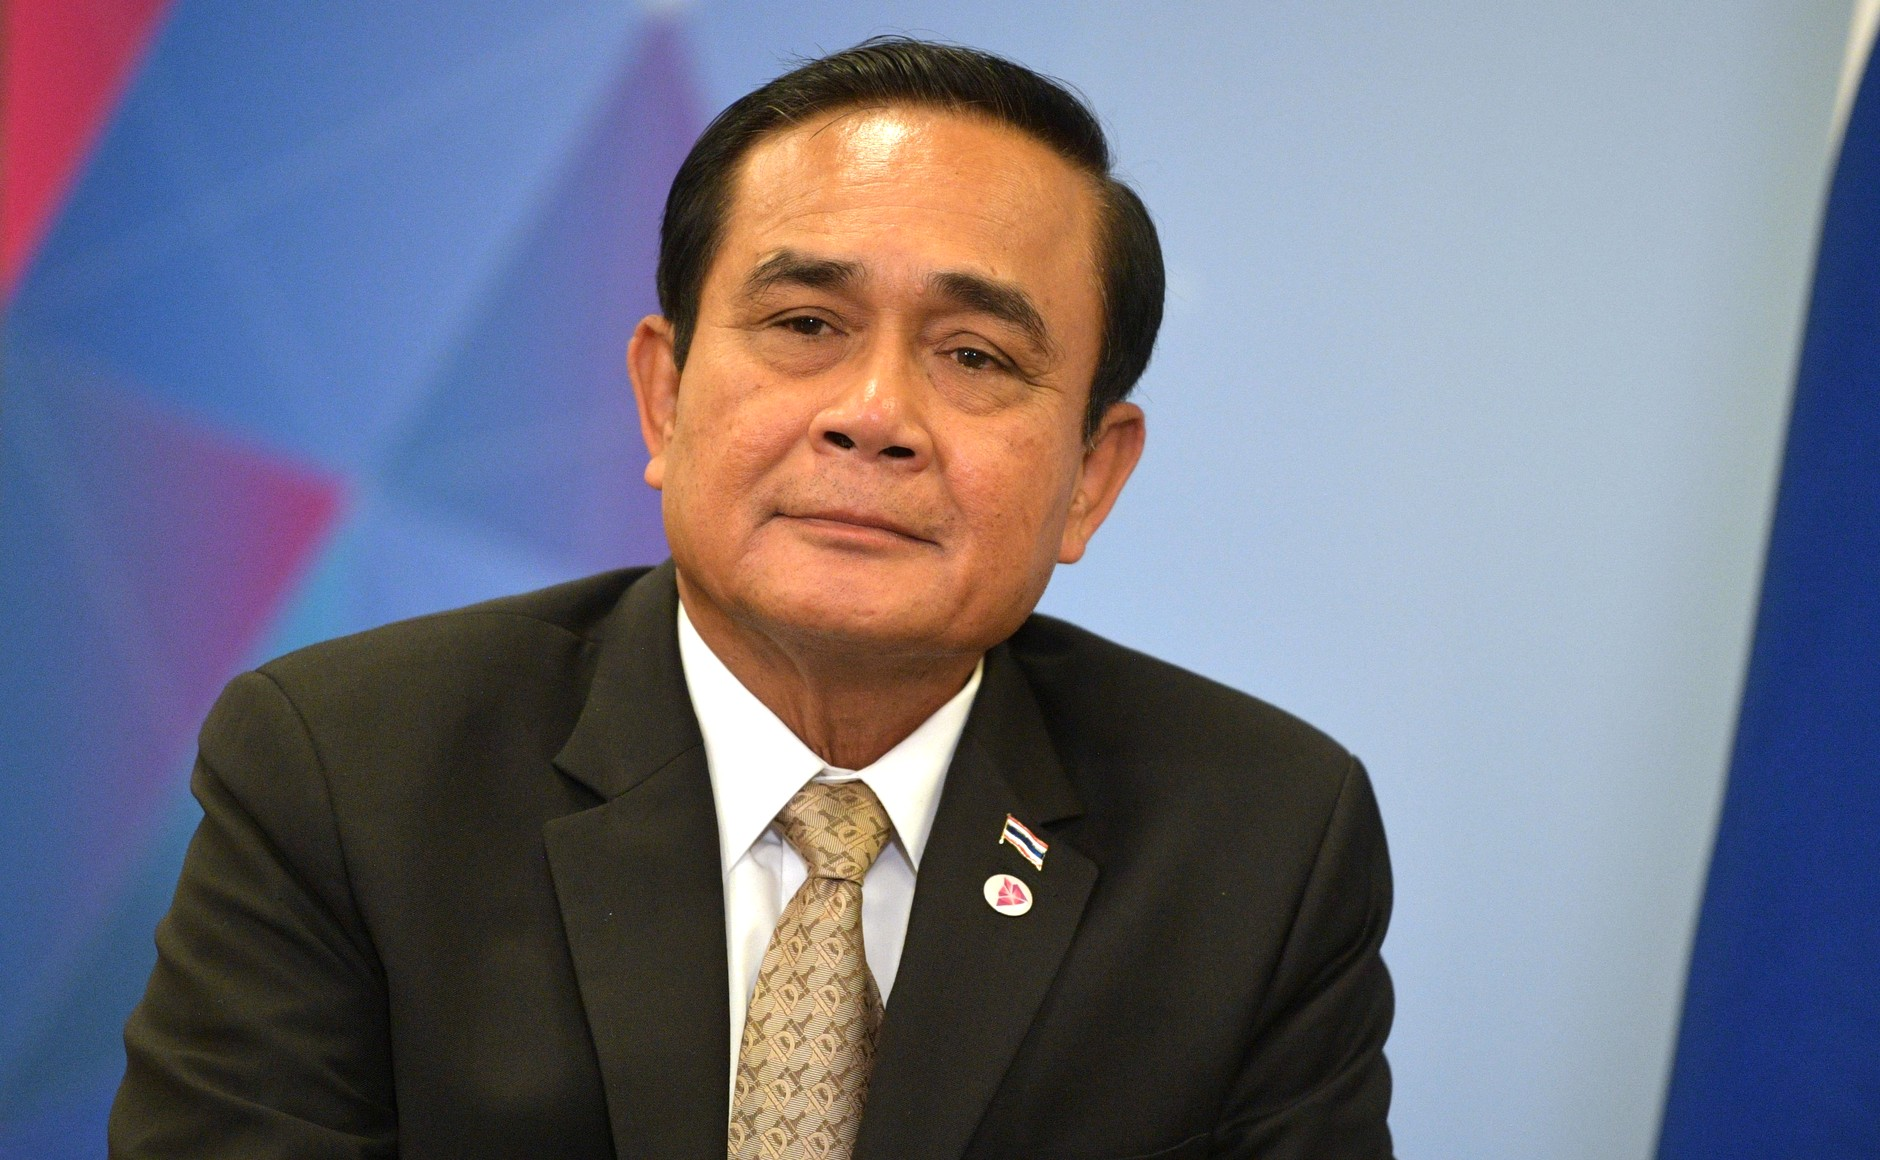 Balancing act for Prayut as storm over party leadership looms